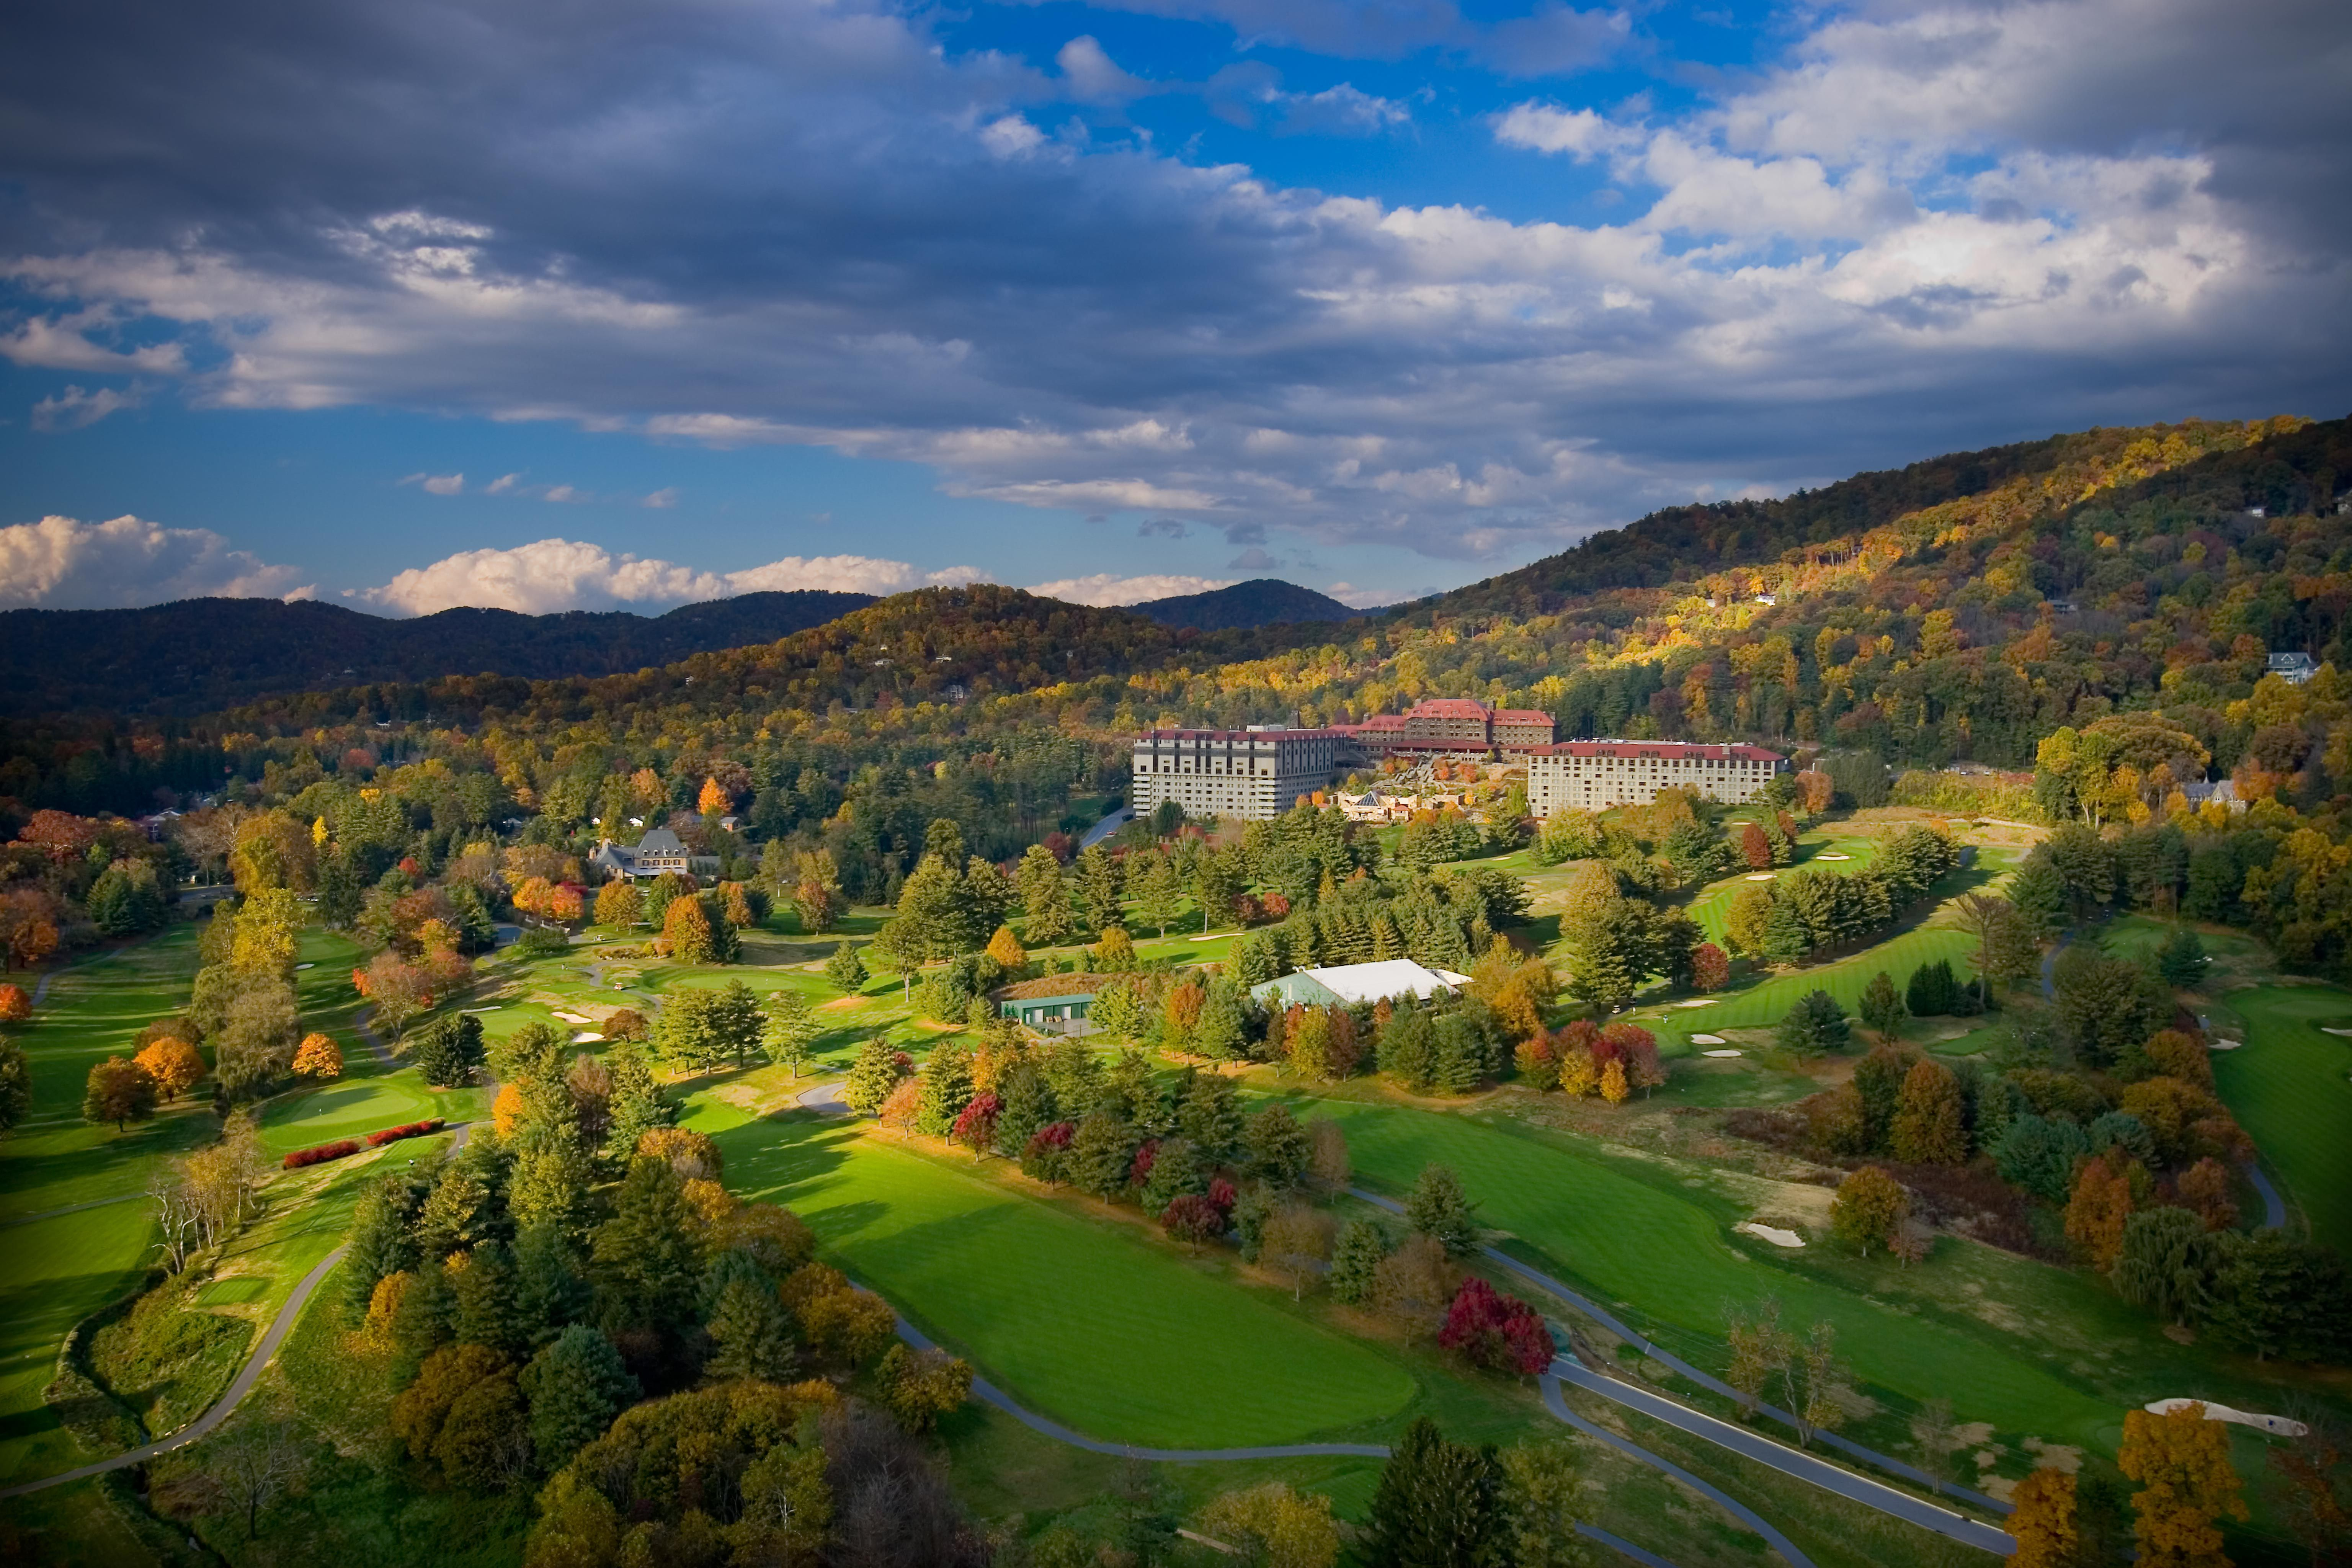 grove park inn in asheville, nc. this may be our fall getaway